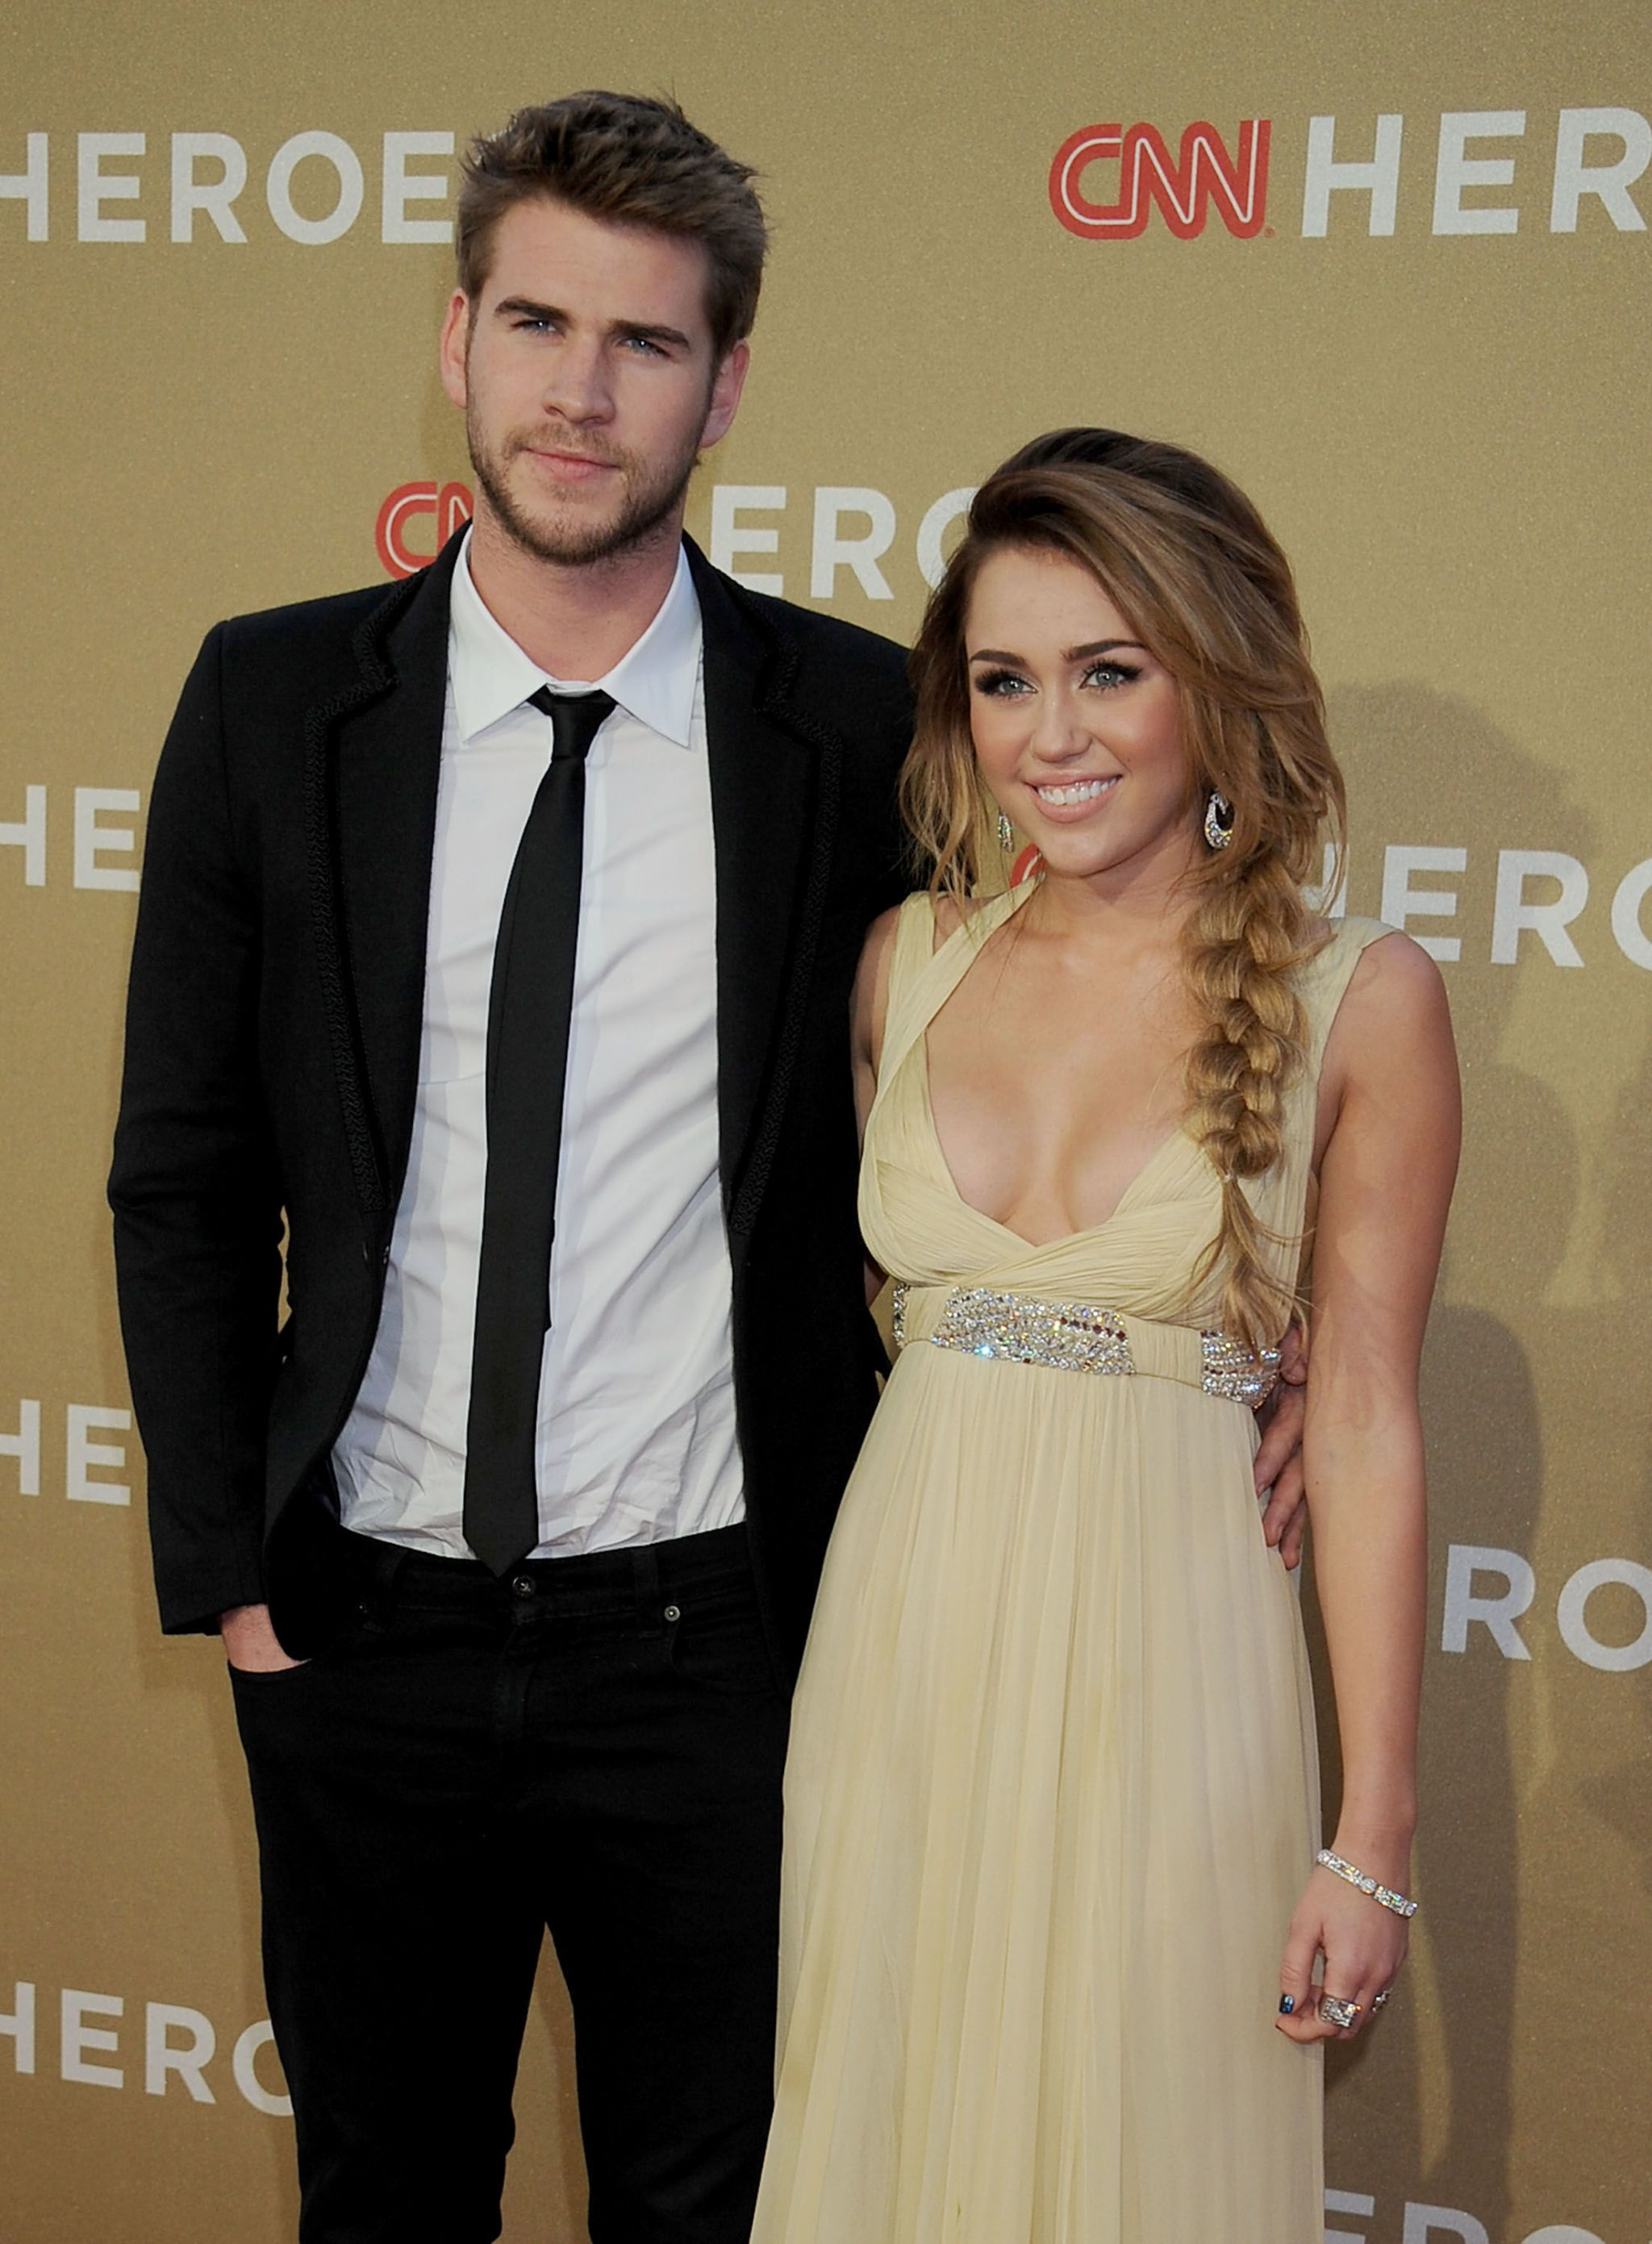 What happened with miley cyrus and liam